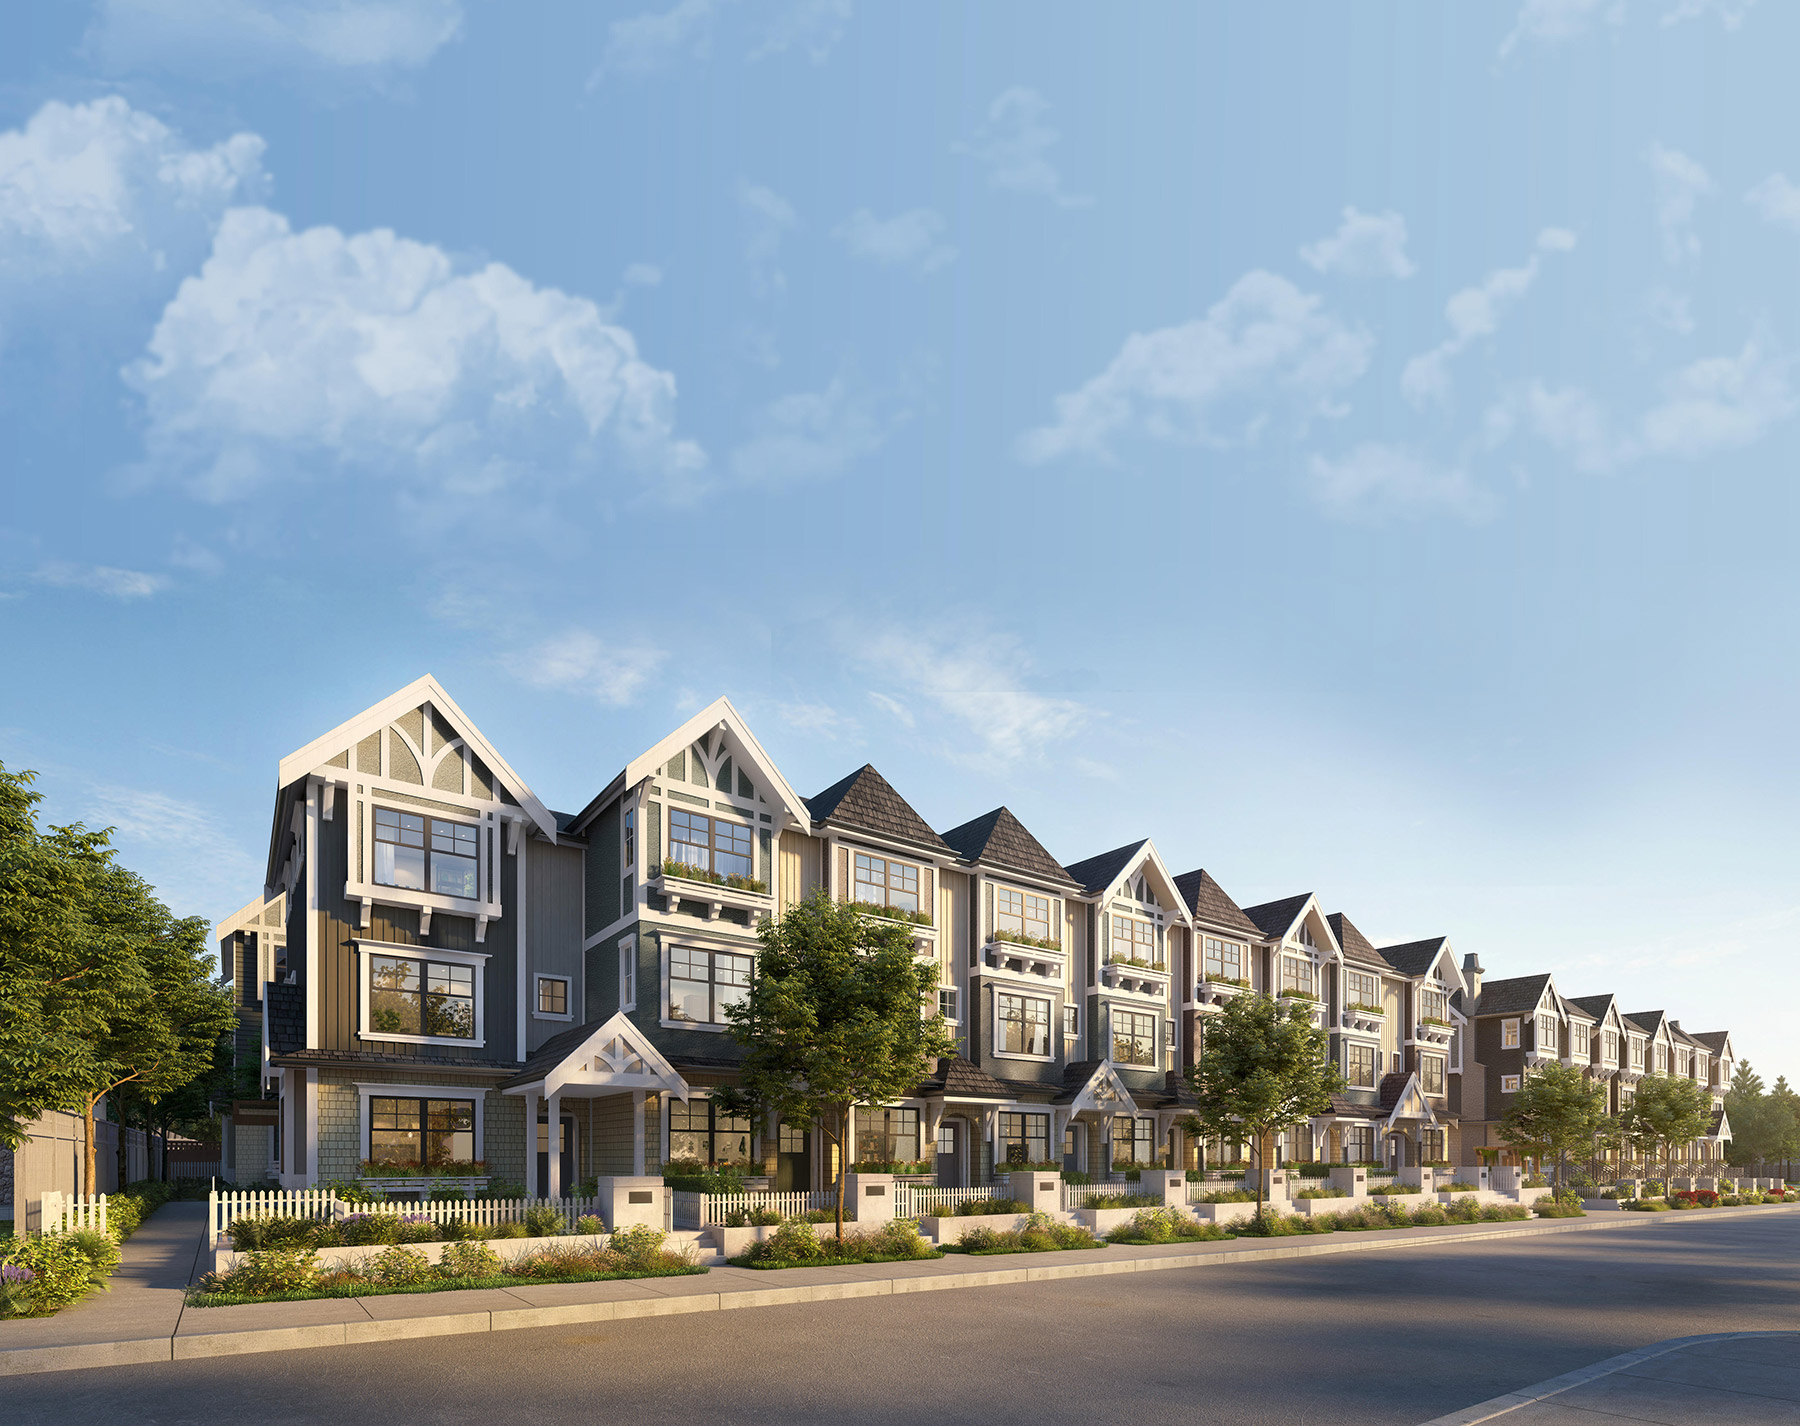 The Robinsons - Burquitlam Townhomes